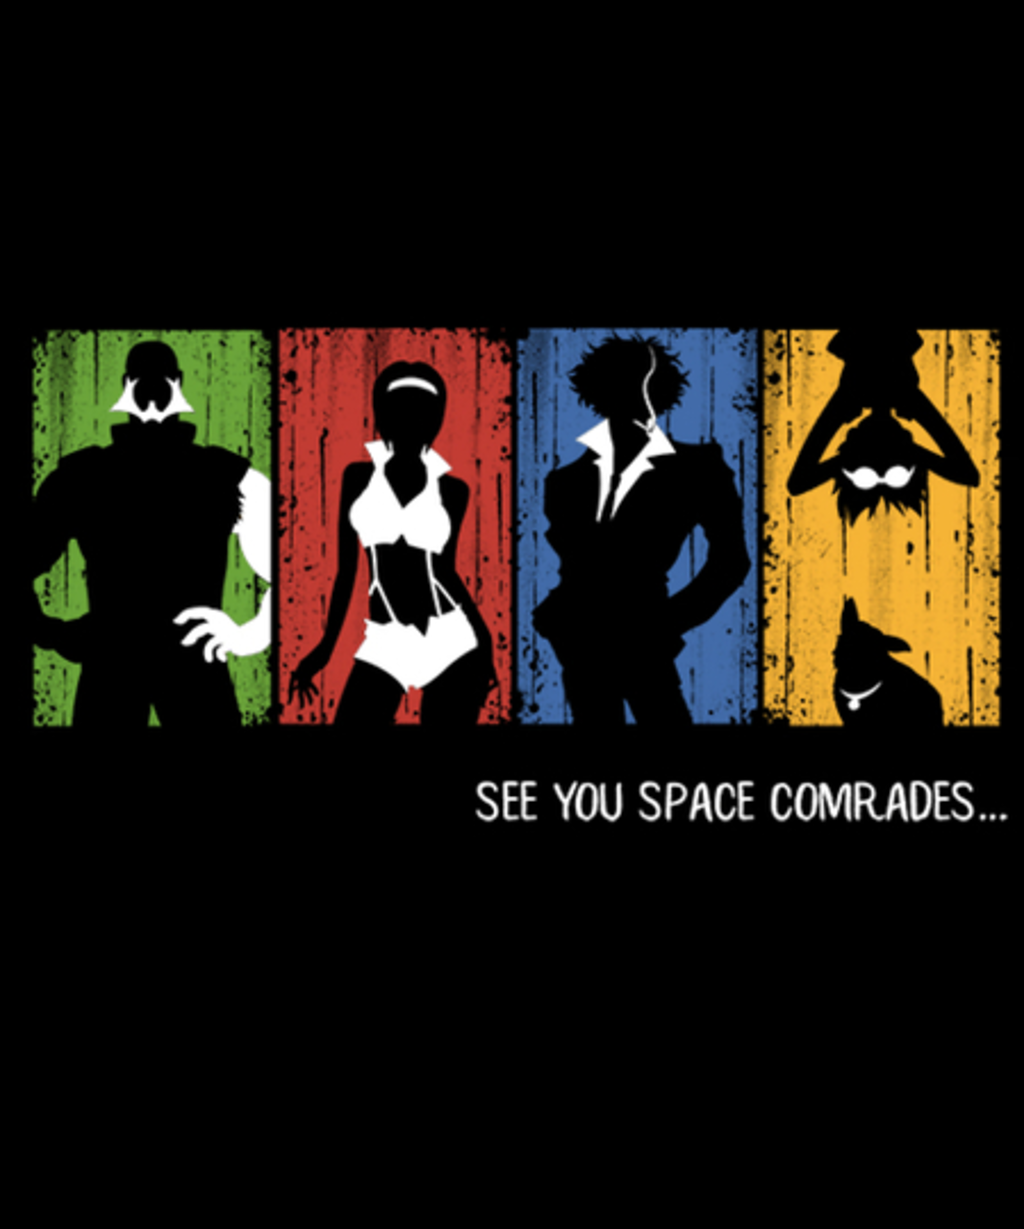 Qwertee: See you space comrades...